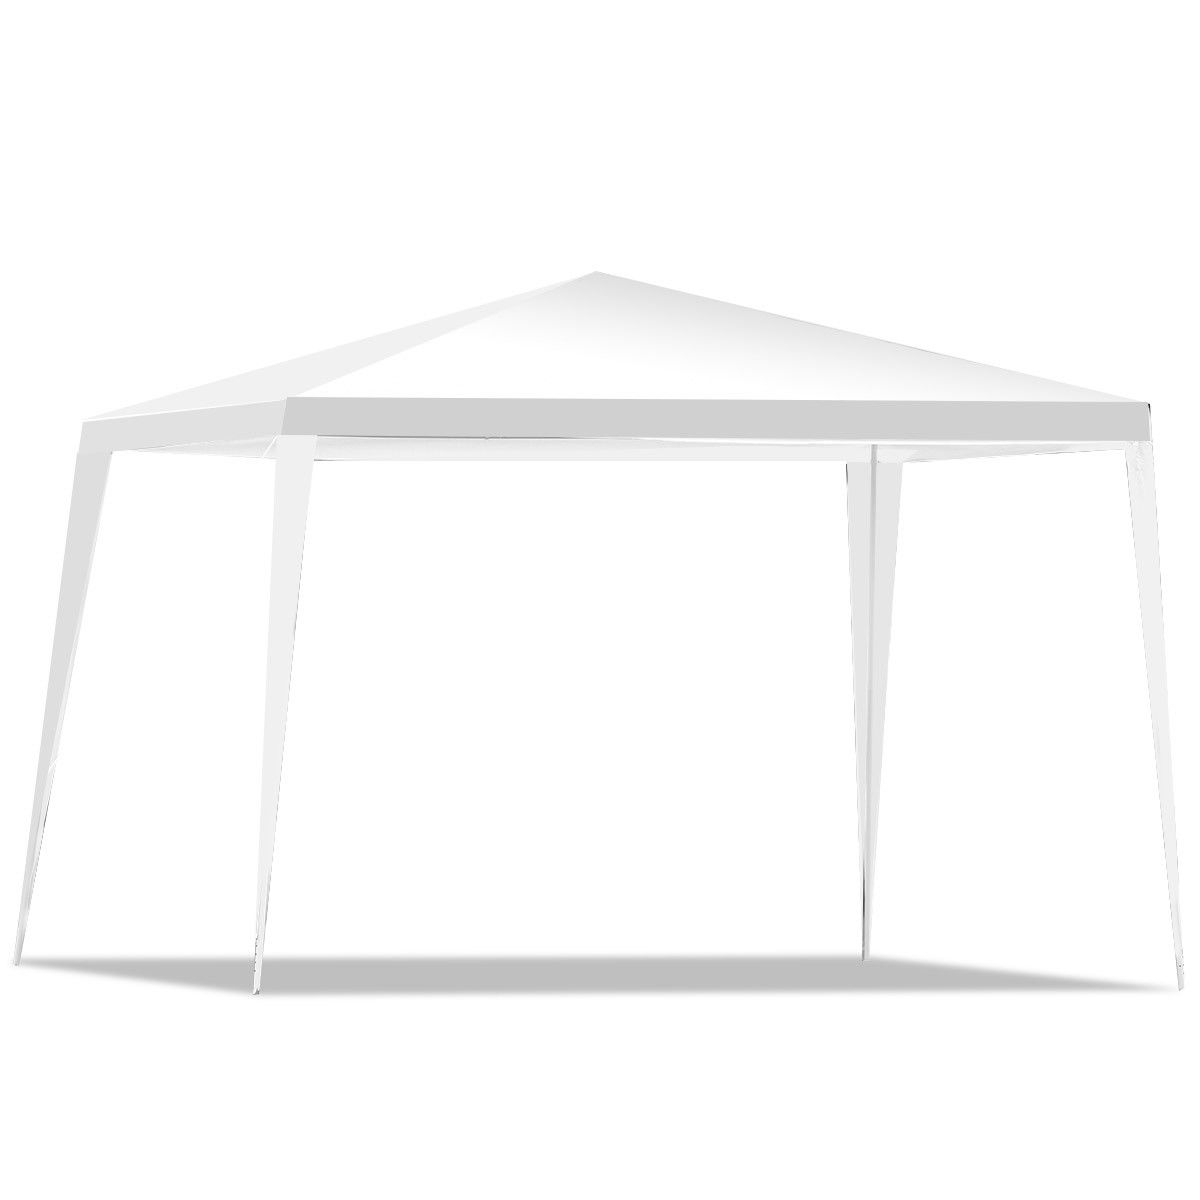 10' x 10' Outdoor Wedding Party Canopy Tent